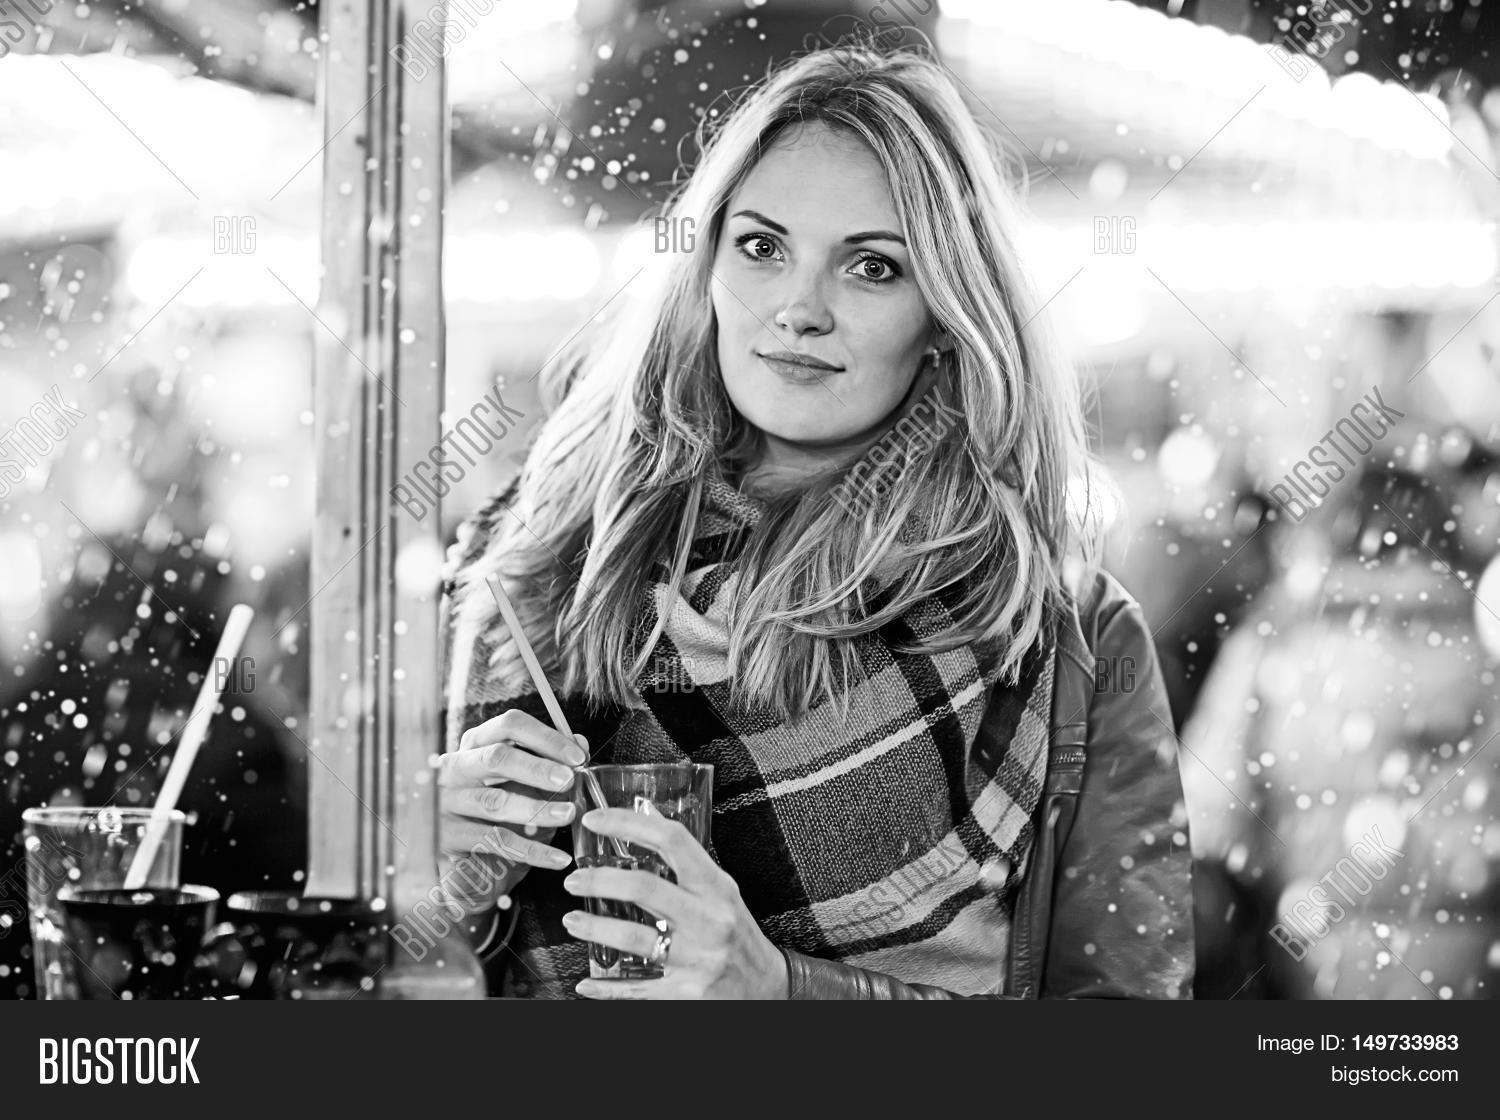 3a72cd3a4ebe Beautiful young woman drinking hot punch, mulled wine on German Christmas  market. Happy girl